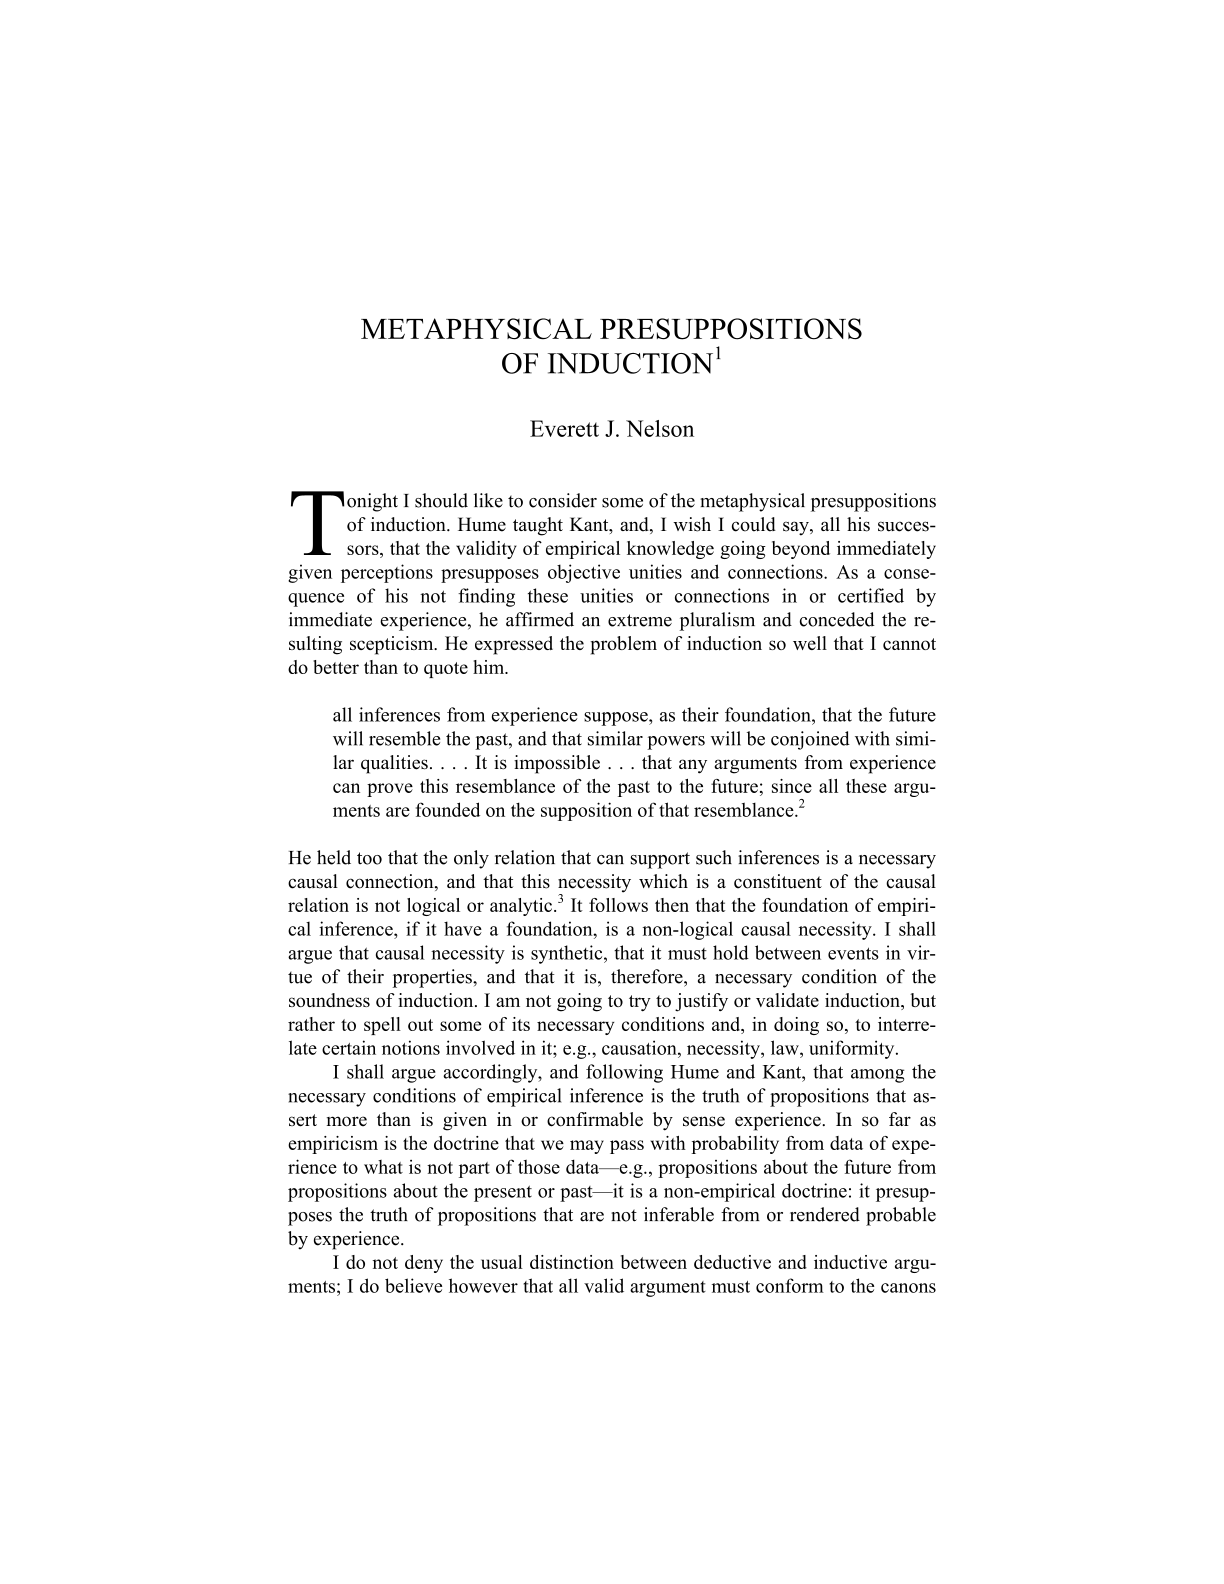 Metaphysical Presuppositions of Induction - Everett J  Nelson - The